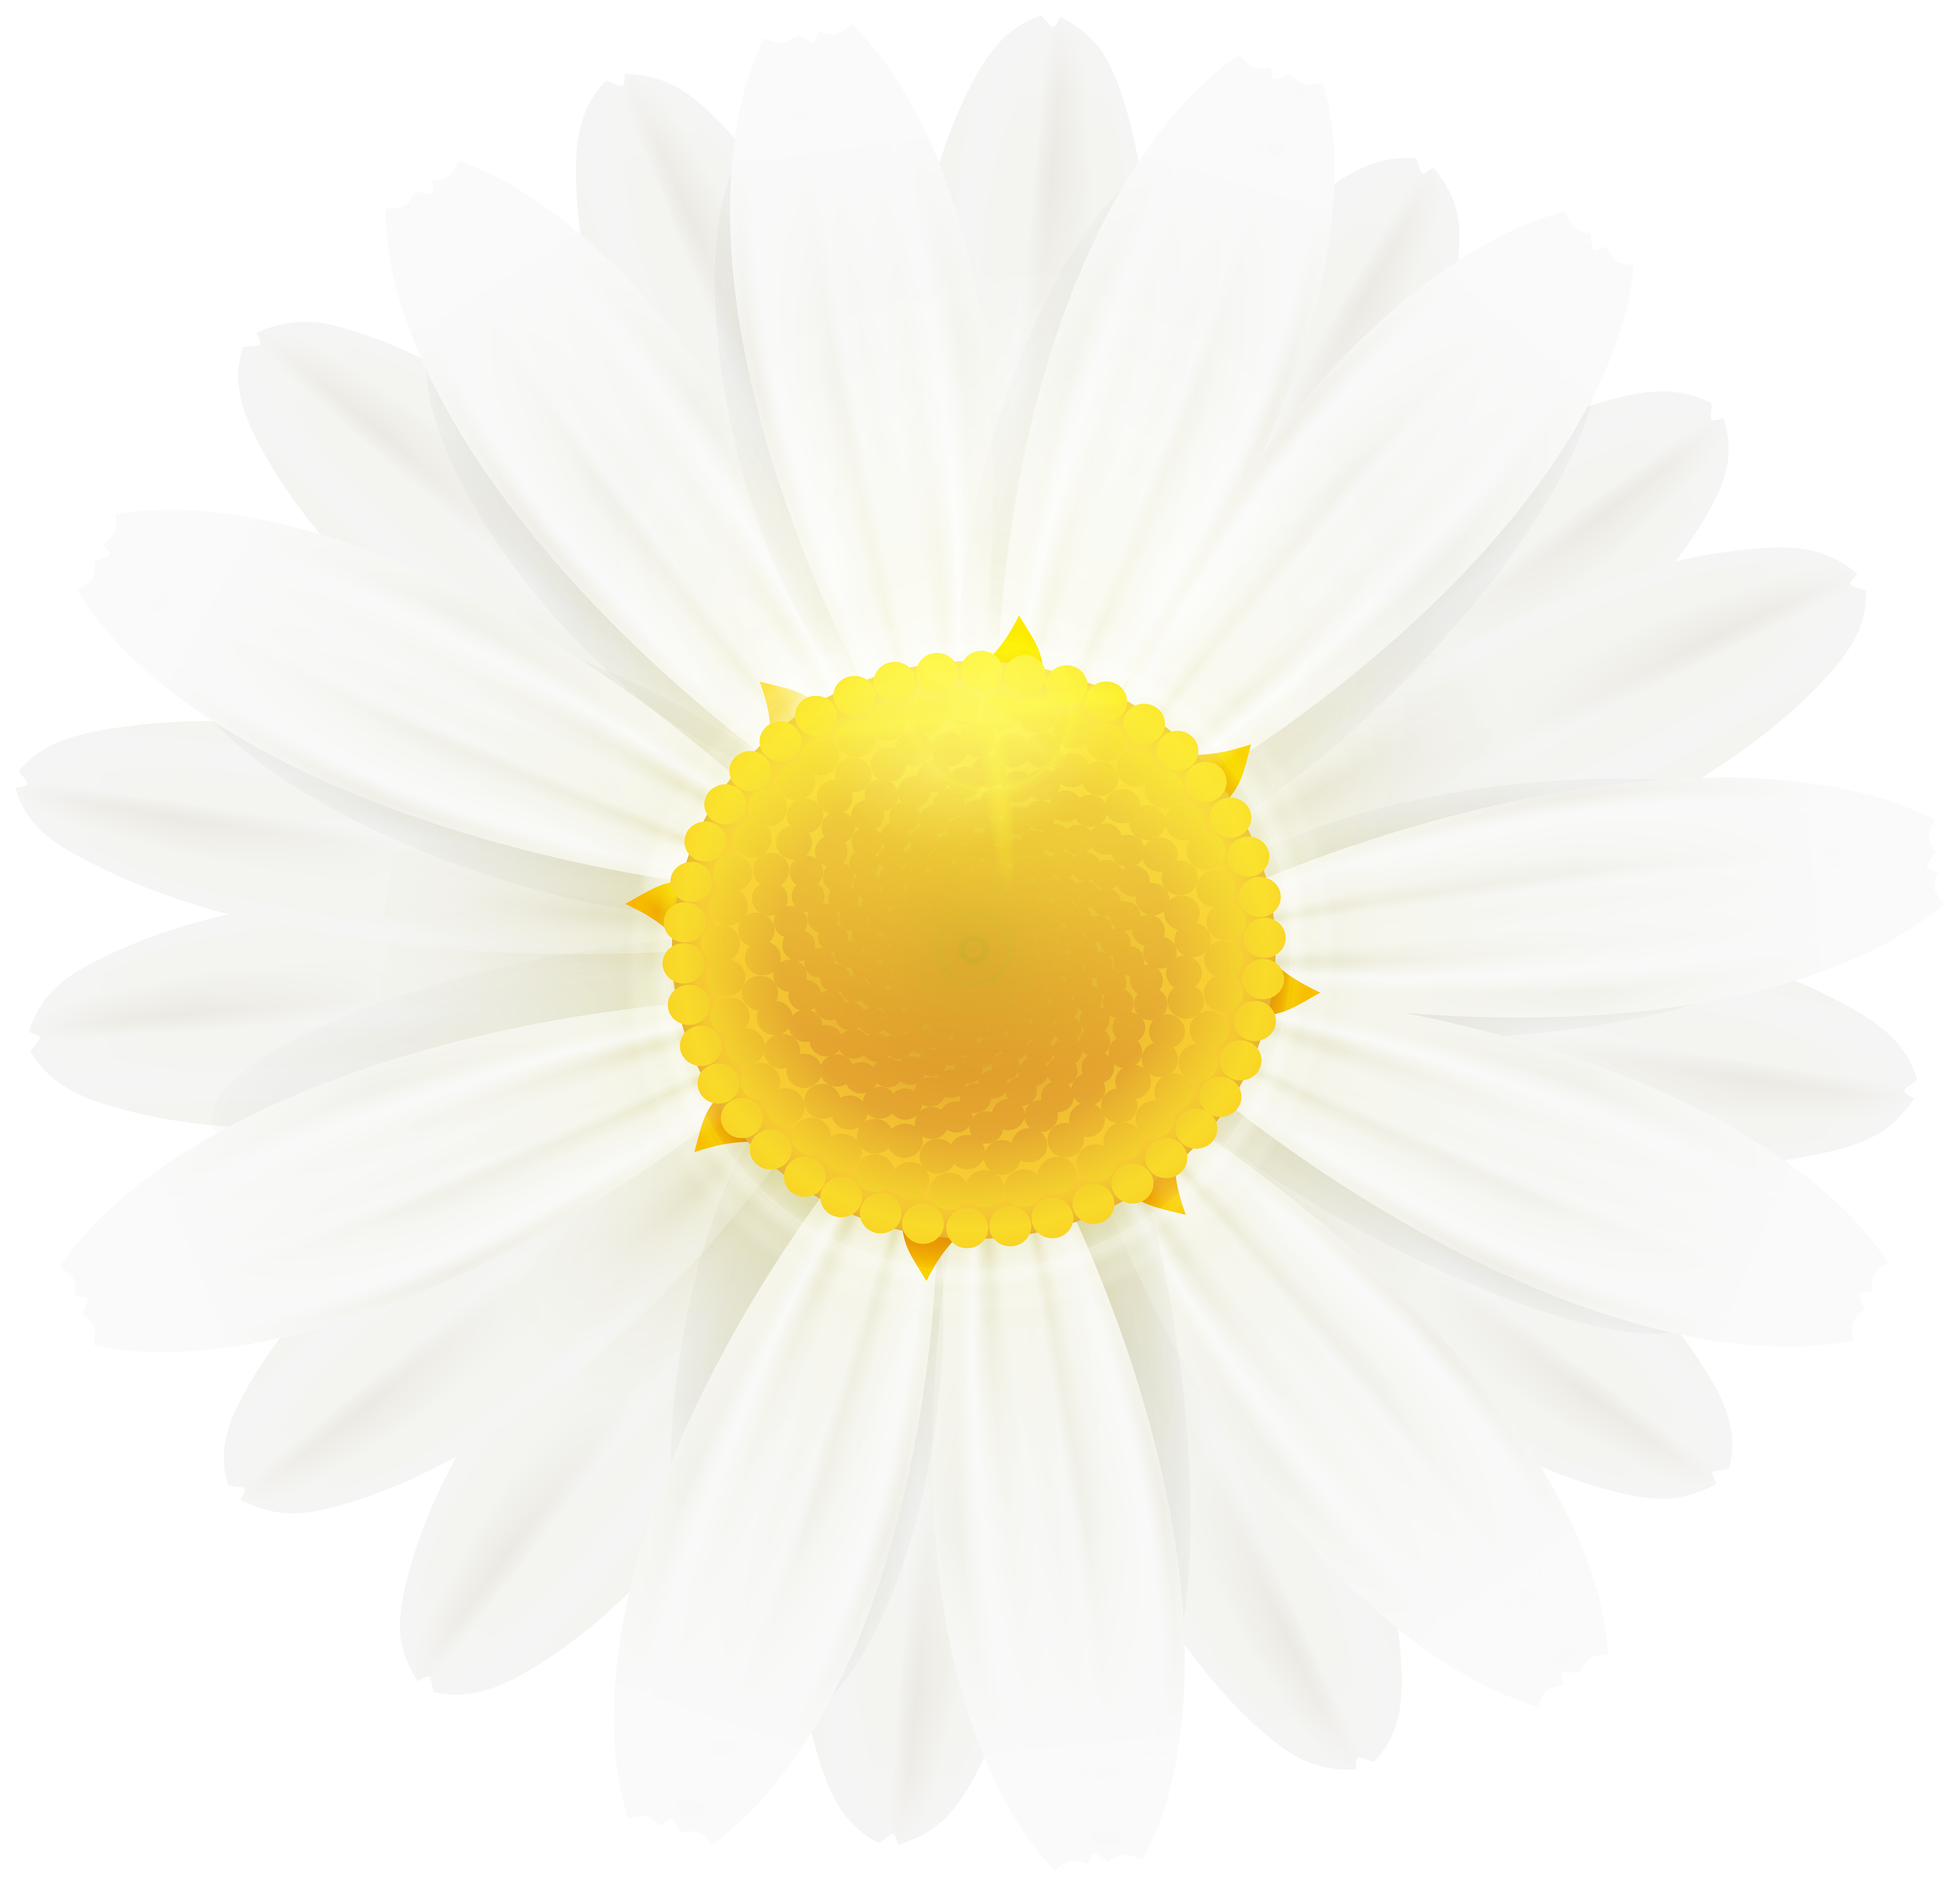 daisy flower clipart 20 free Cliparts   Download images on ... (8000 x 7696 Pixel)